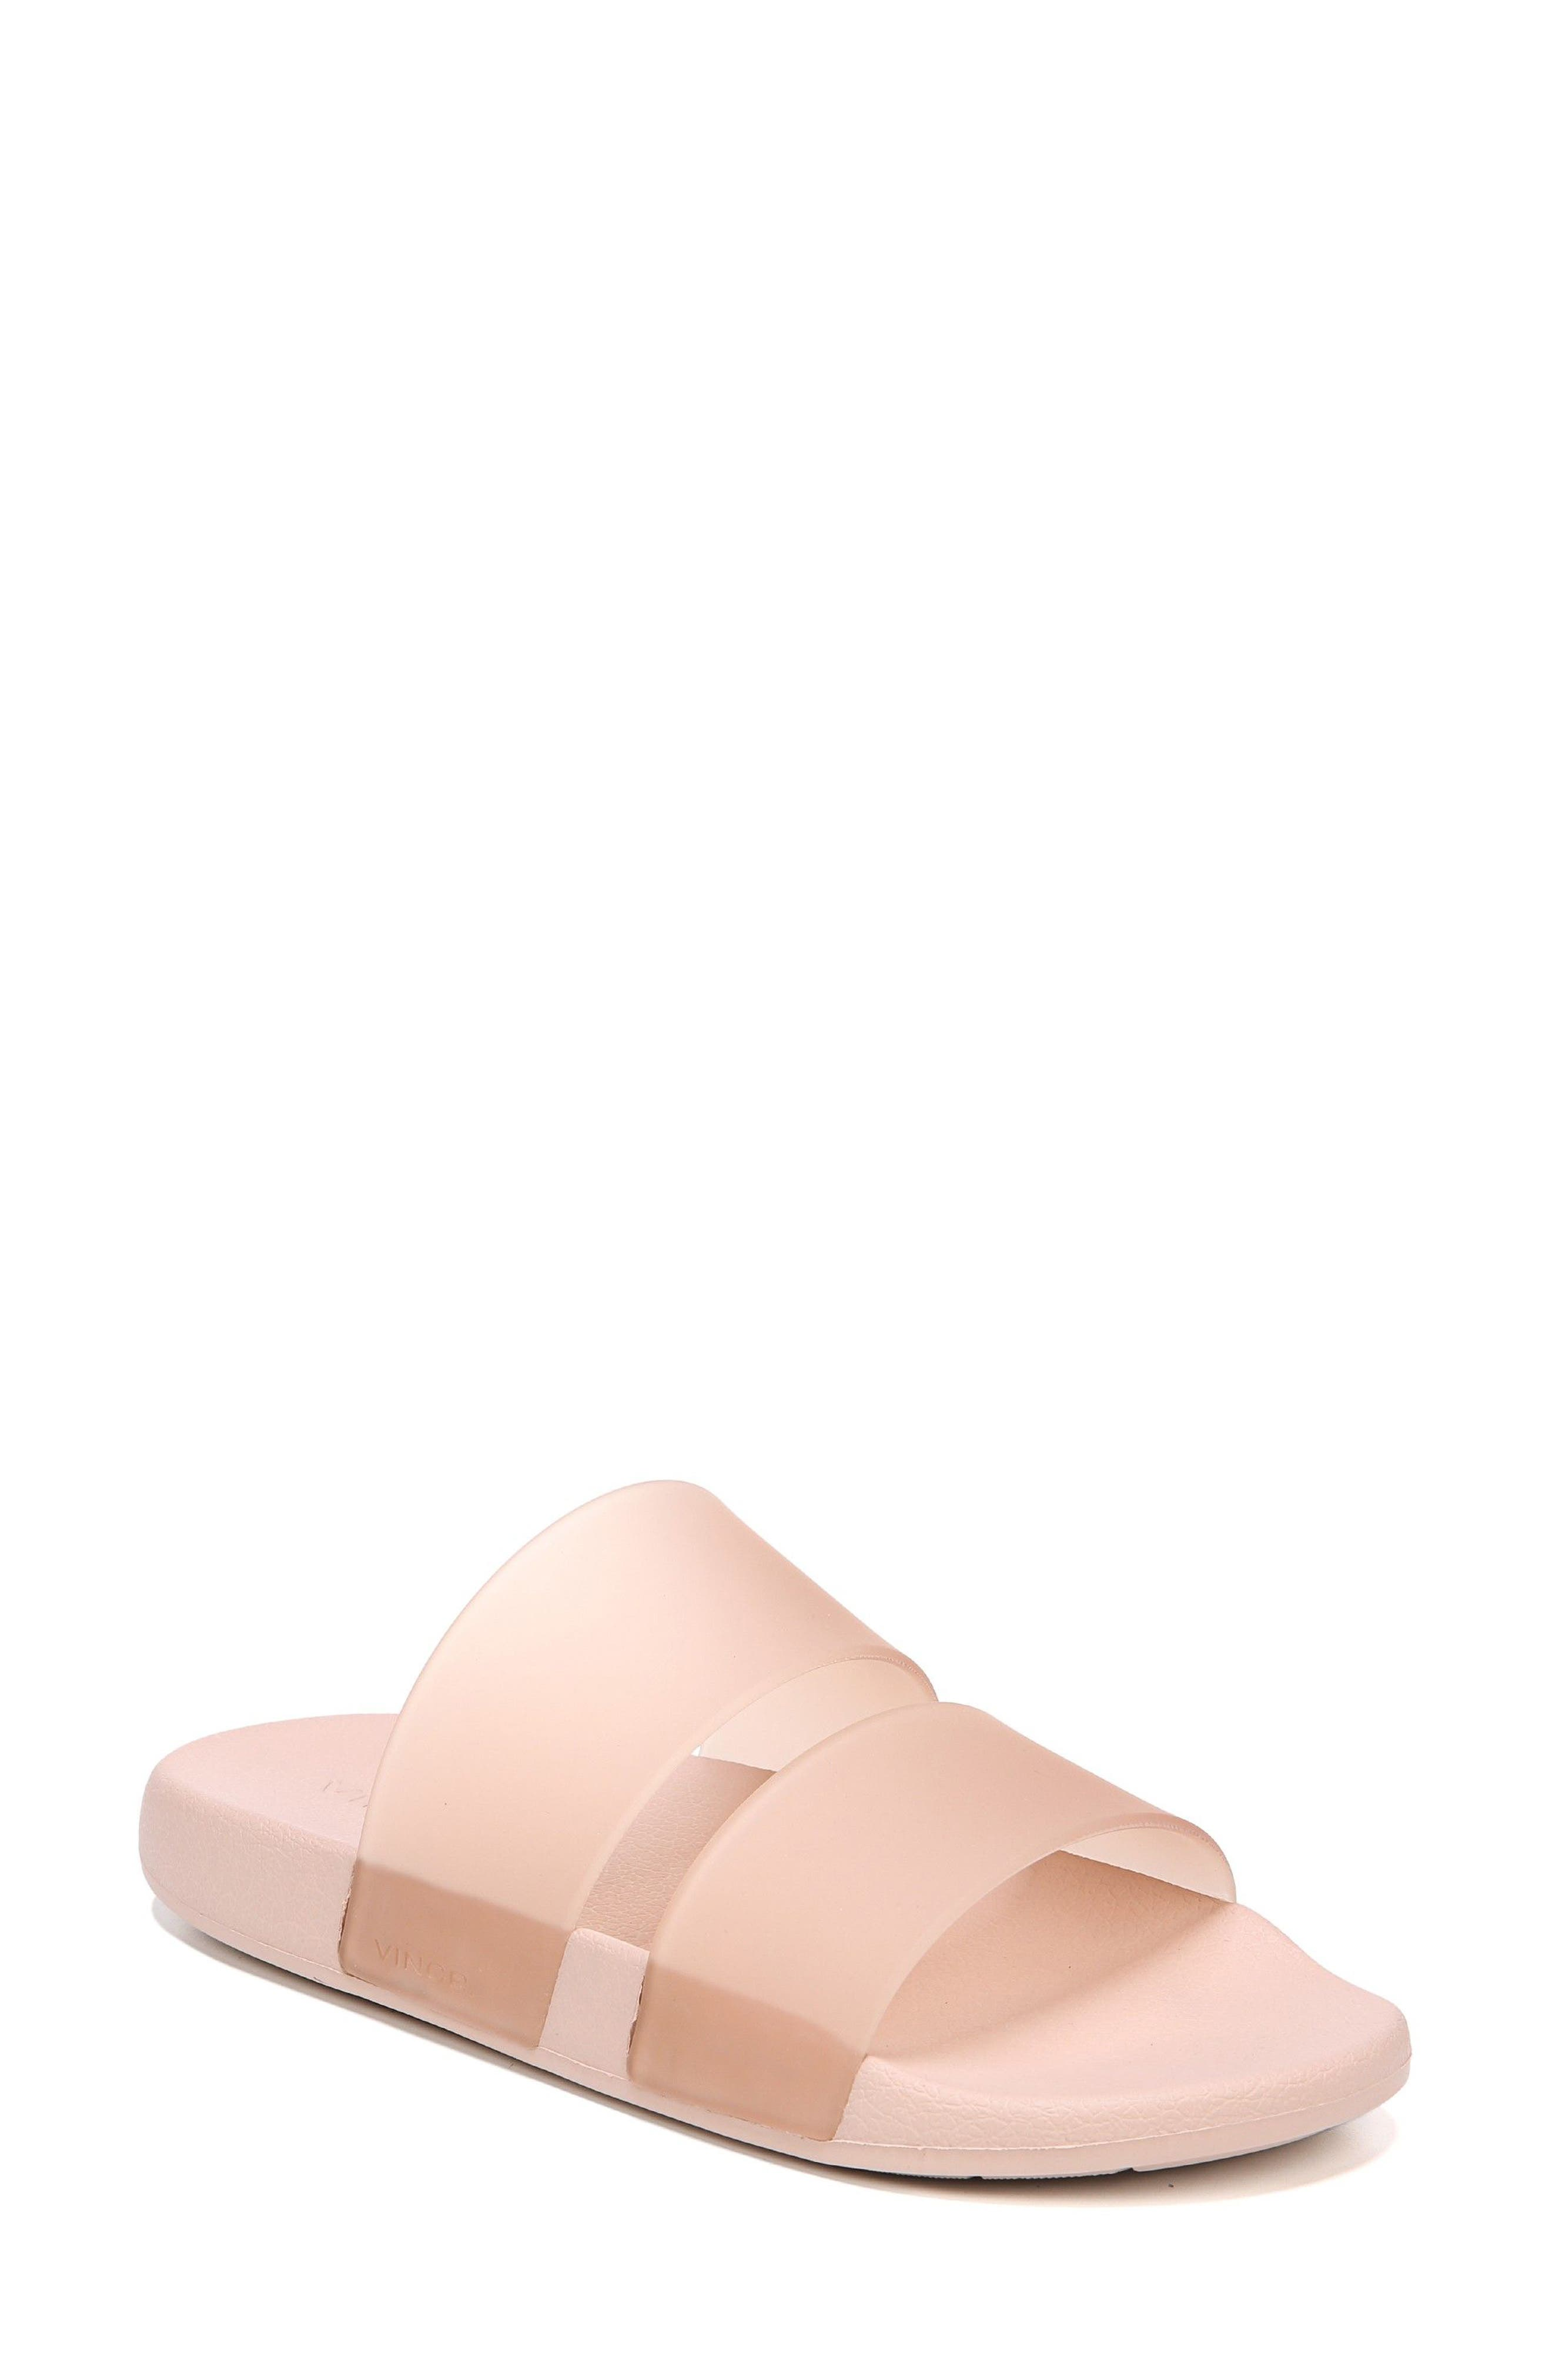 Alternate Image 1 Selected - Vince Wynne Slide Sandal (Women)